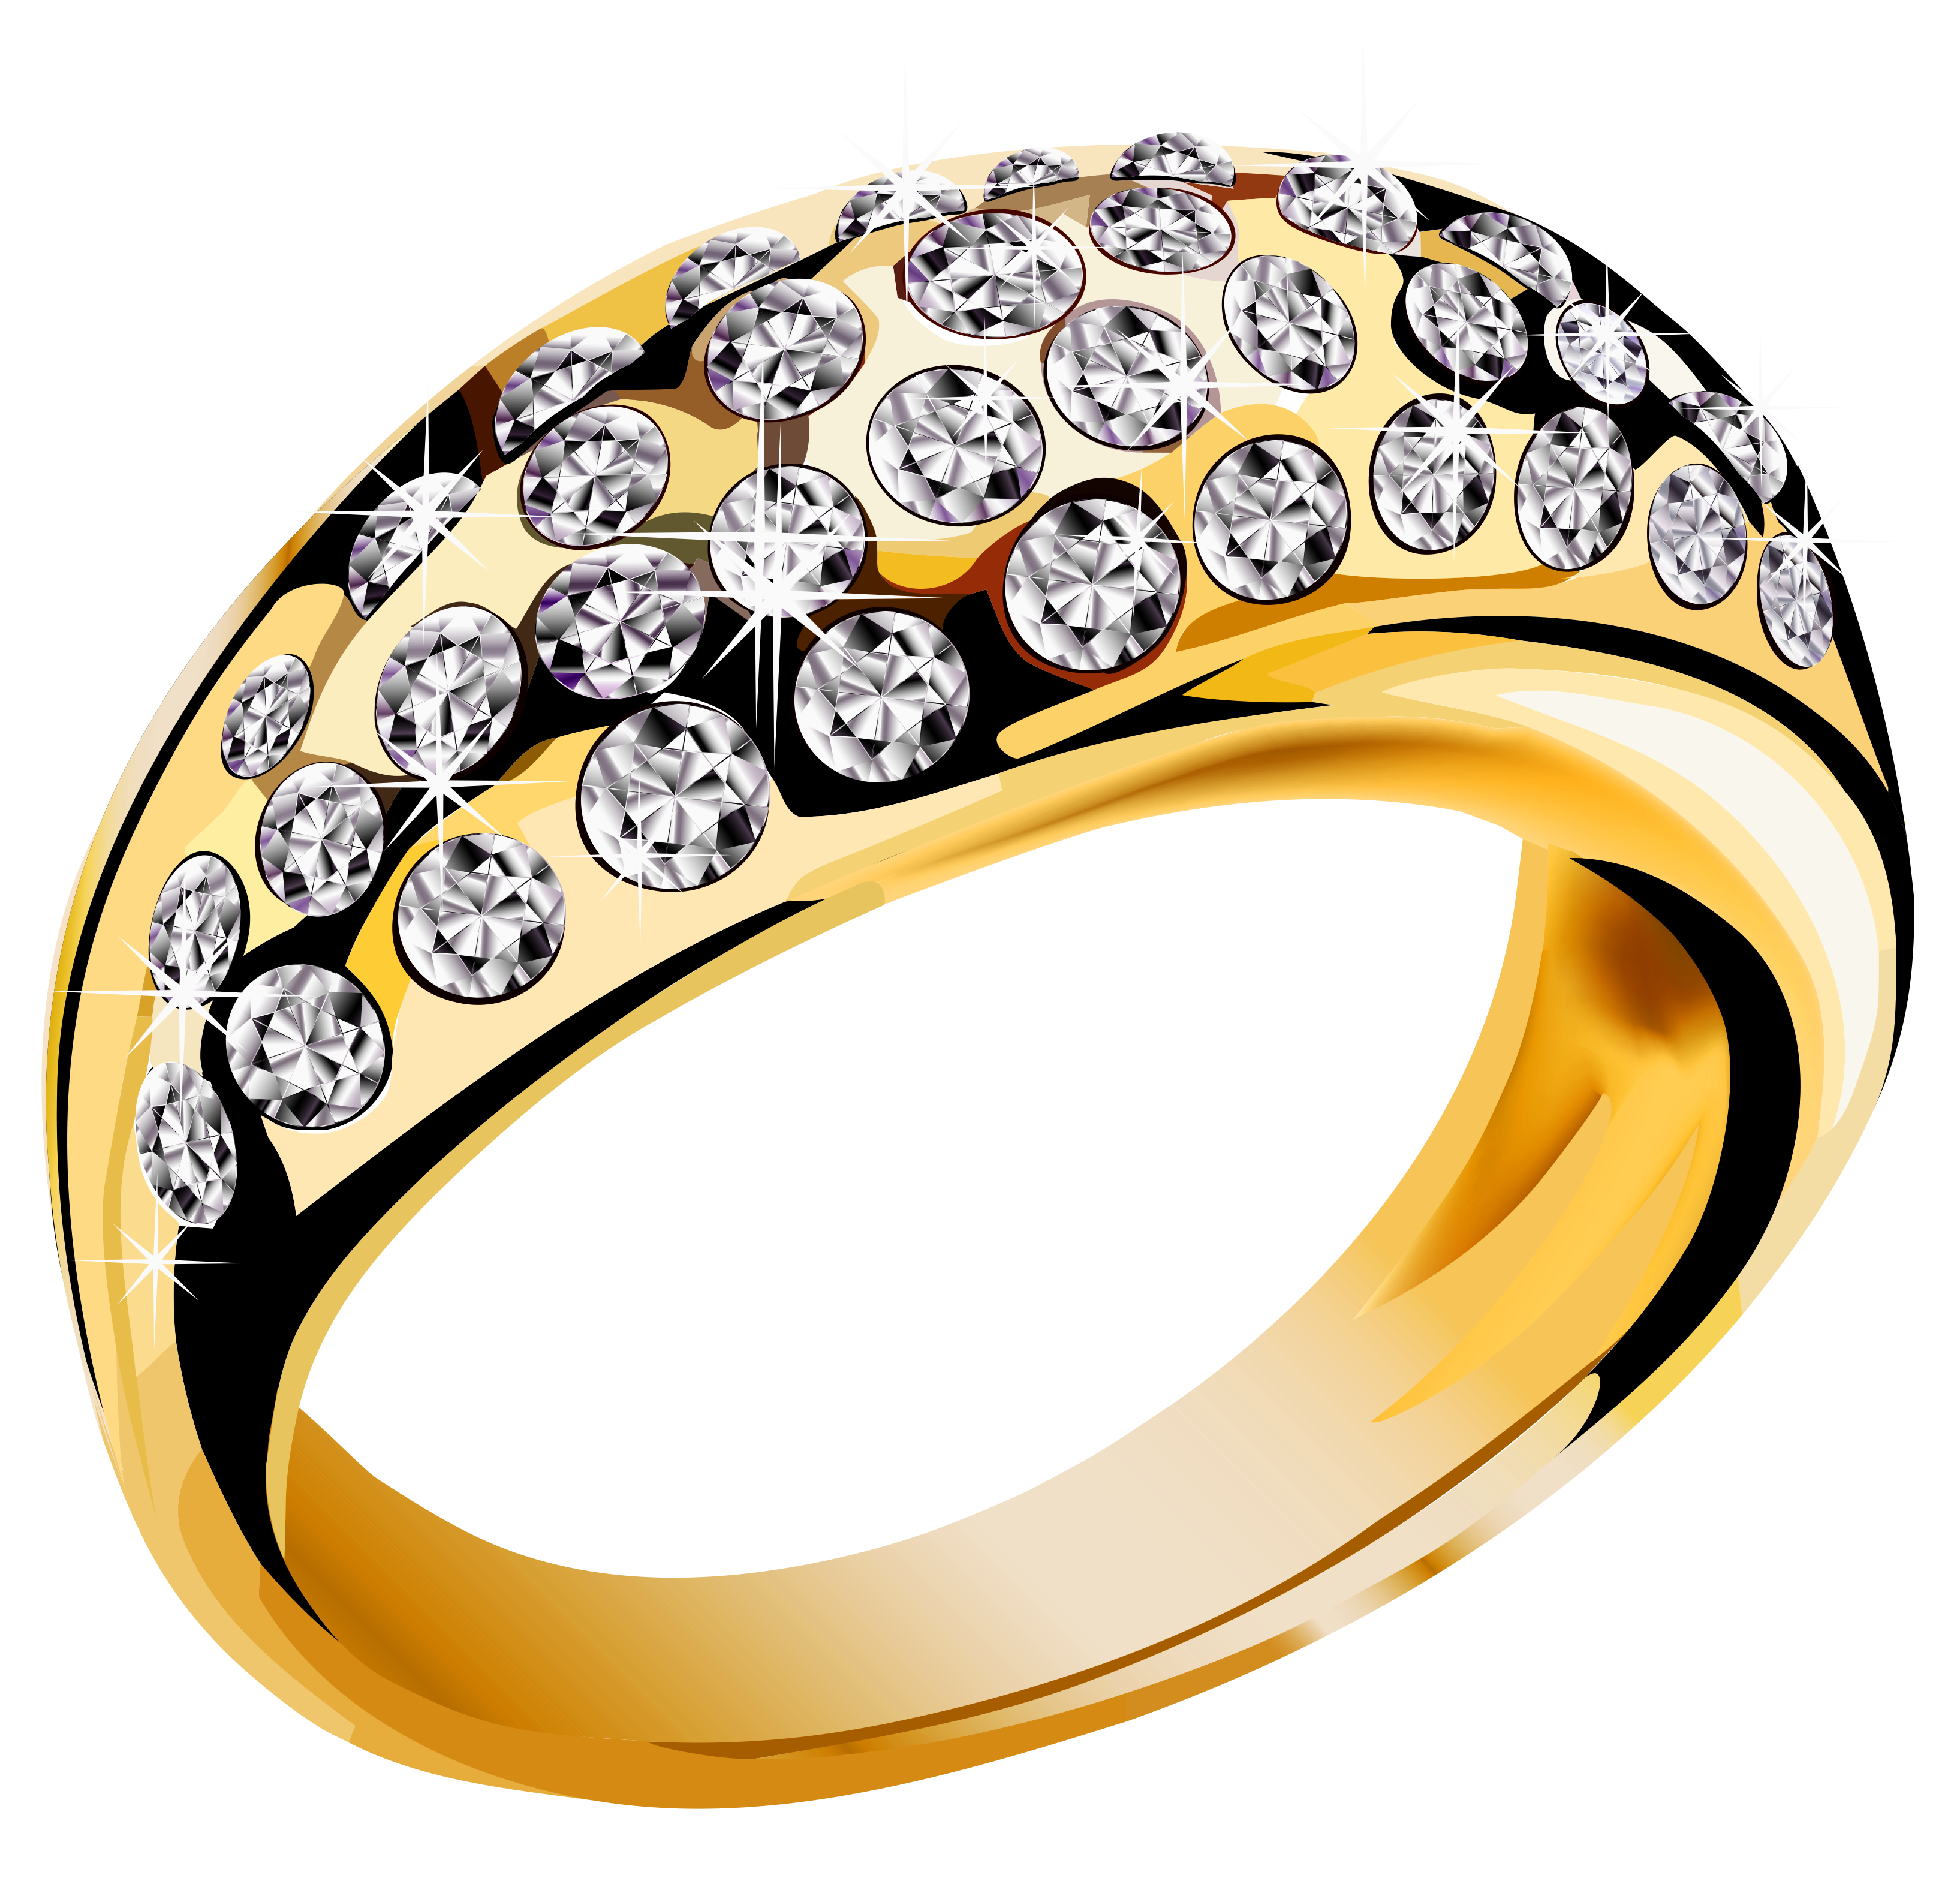 Engagement Ring PNG HD Free - 141392